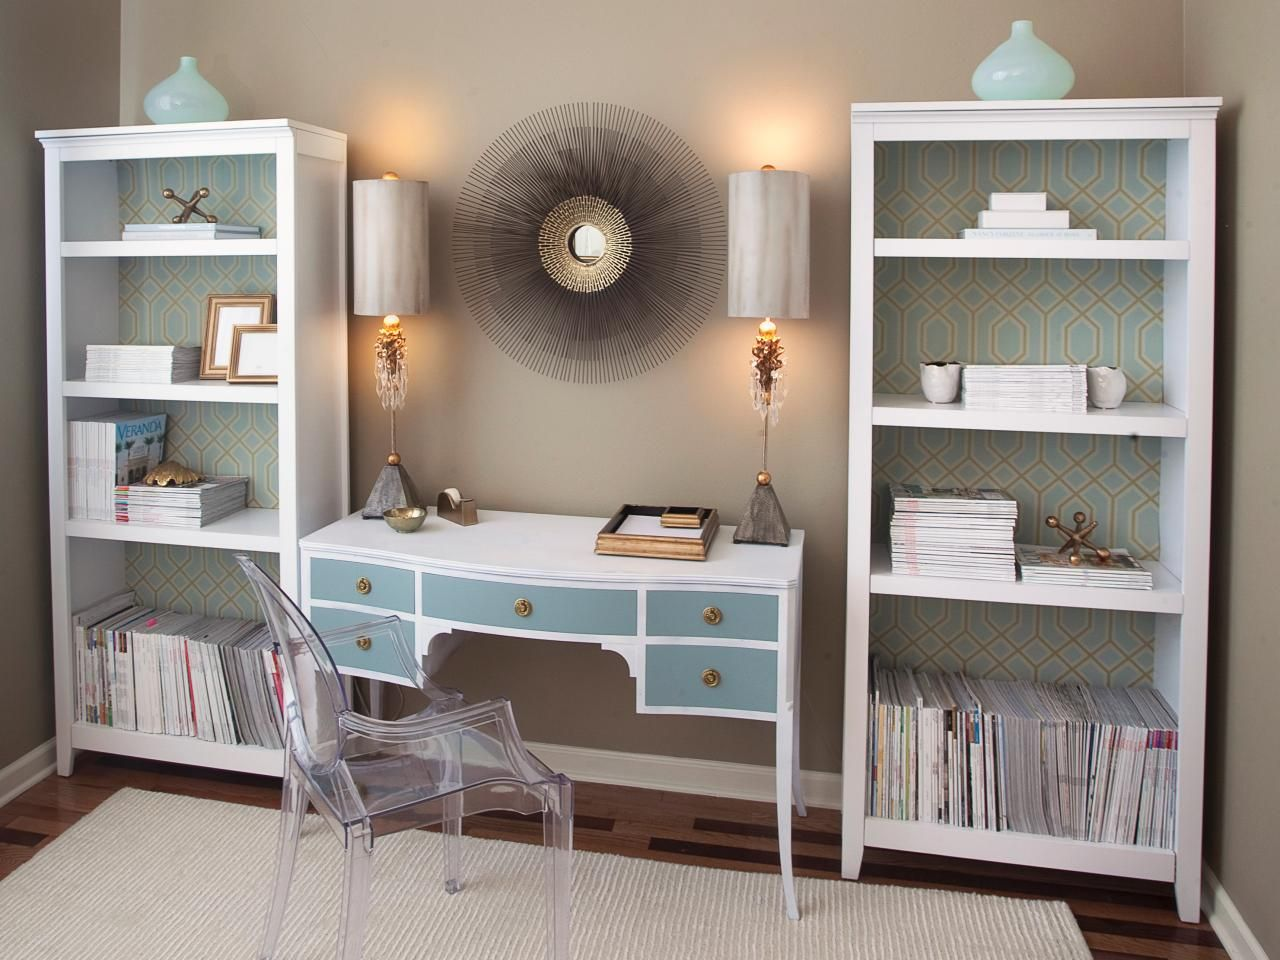 home office bookshelf. The Ordinary Bookshelves In This Home Office Are Lined With Graphic Fabric To Give Them A Punch Of Color And Pizzazz. Desk Is Vintage Piece Painted Bookshelf